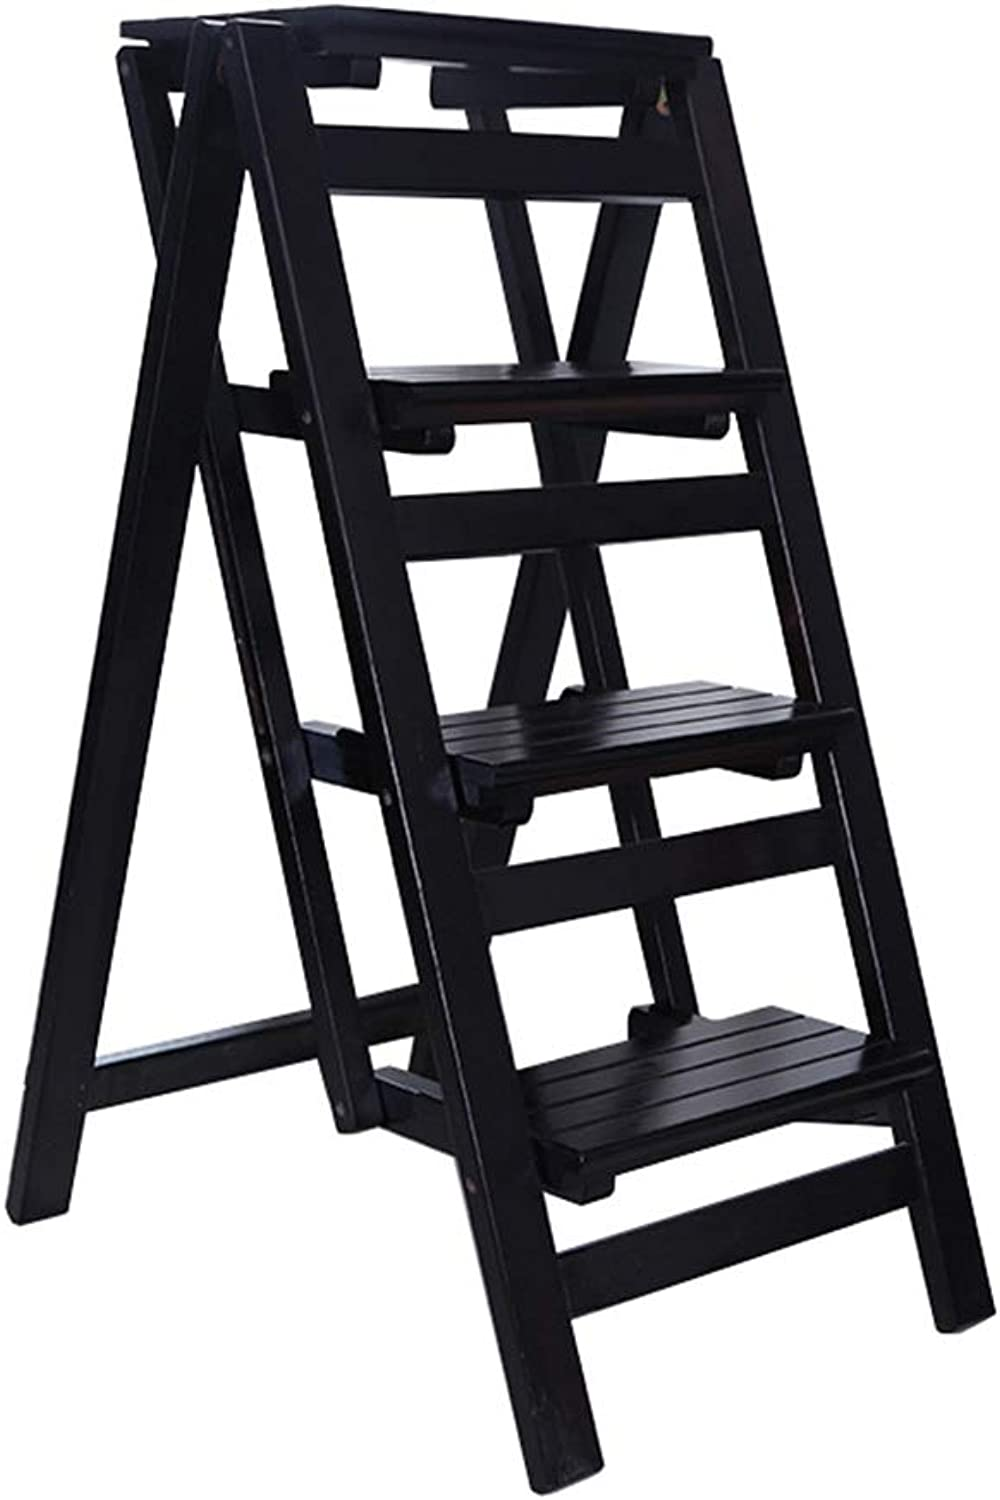 Plant Stand   Folding Portable Stepstool Ladder   Household Stair Stool Chair Wood   Stepladders for Kids & Adults   Home Garden Tool